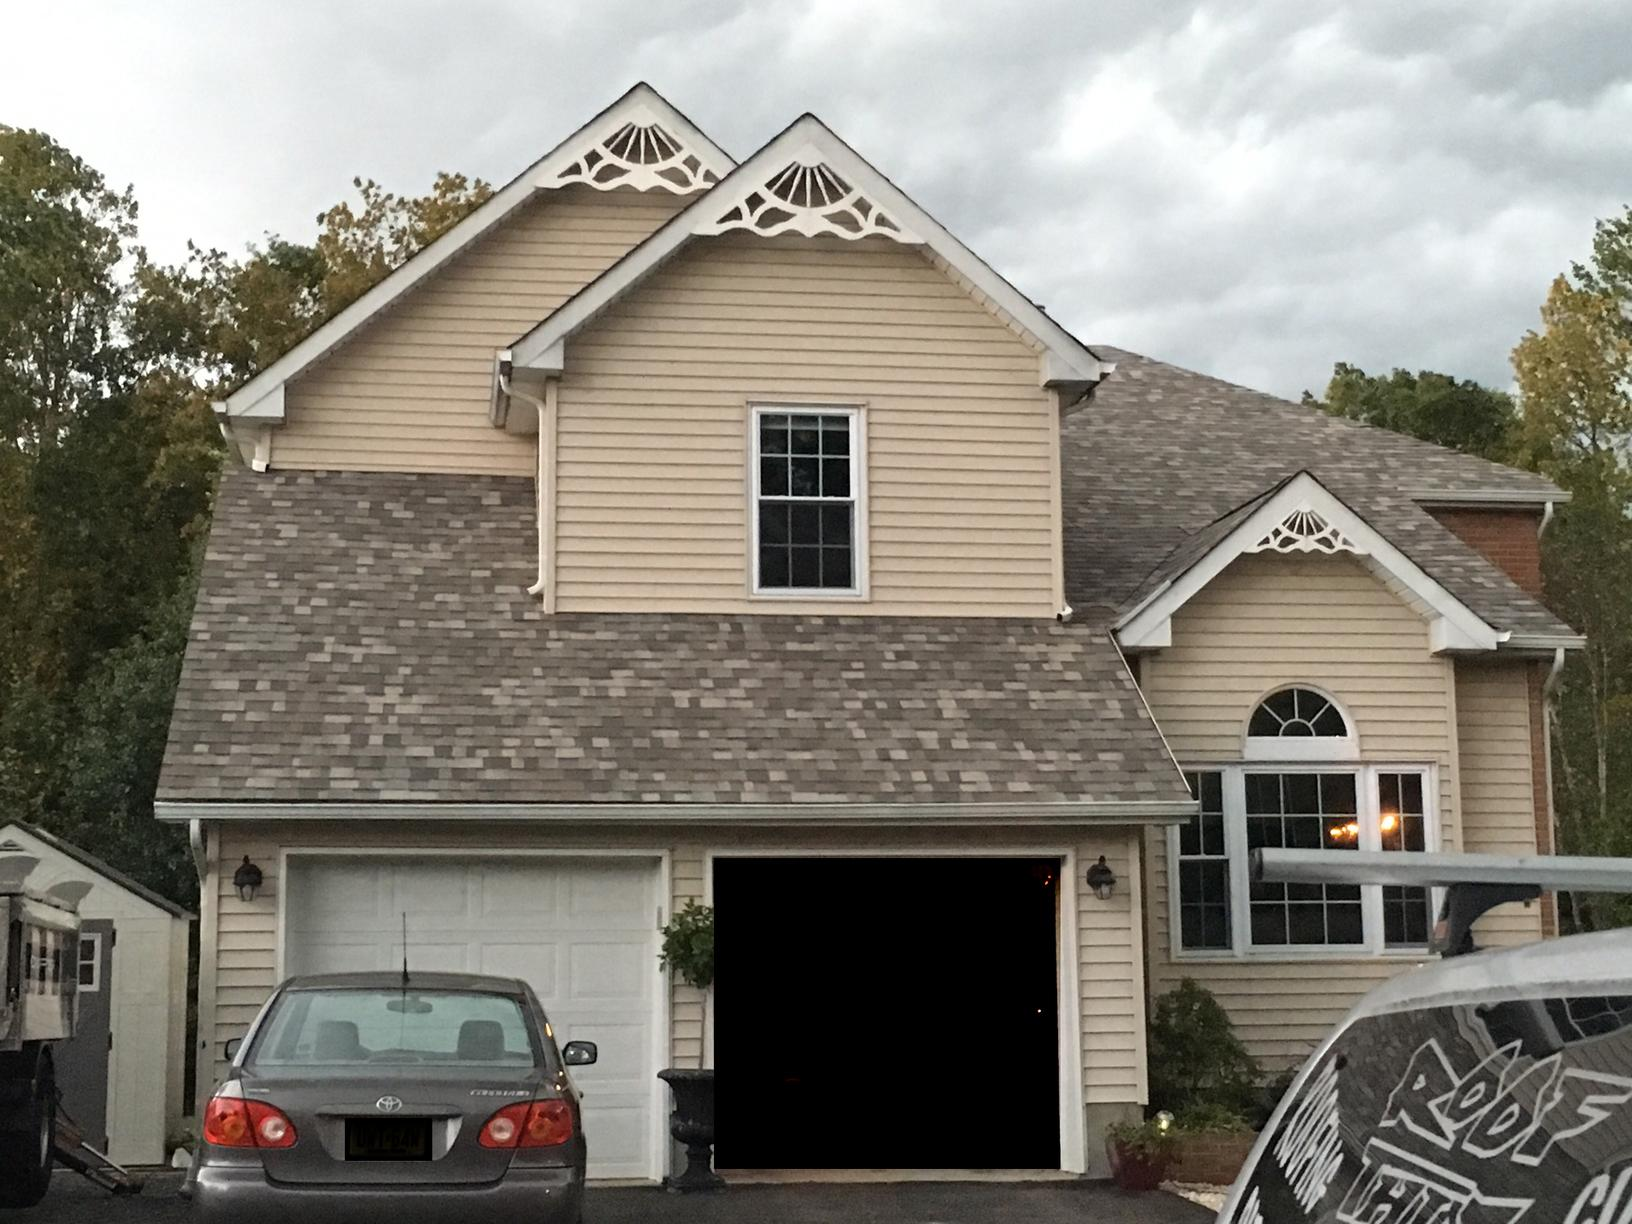 Roof Replacement in Old Bridge, NJ - After Photo